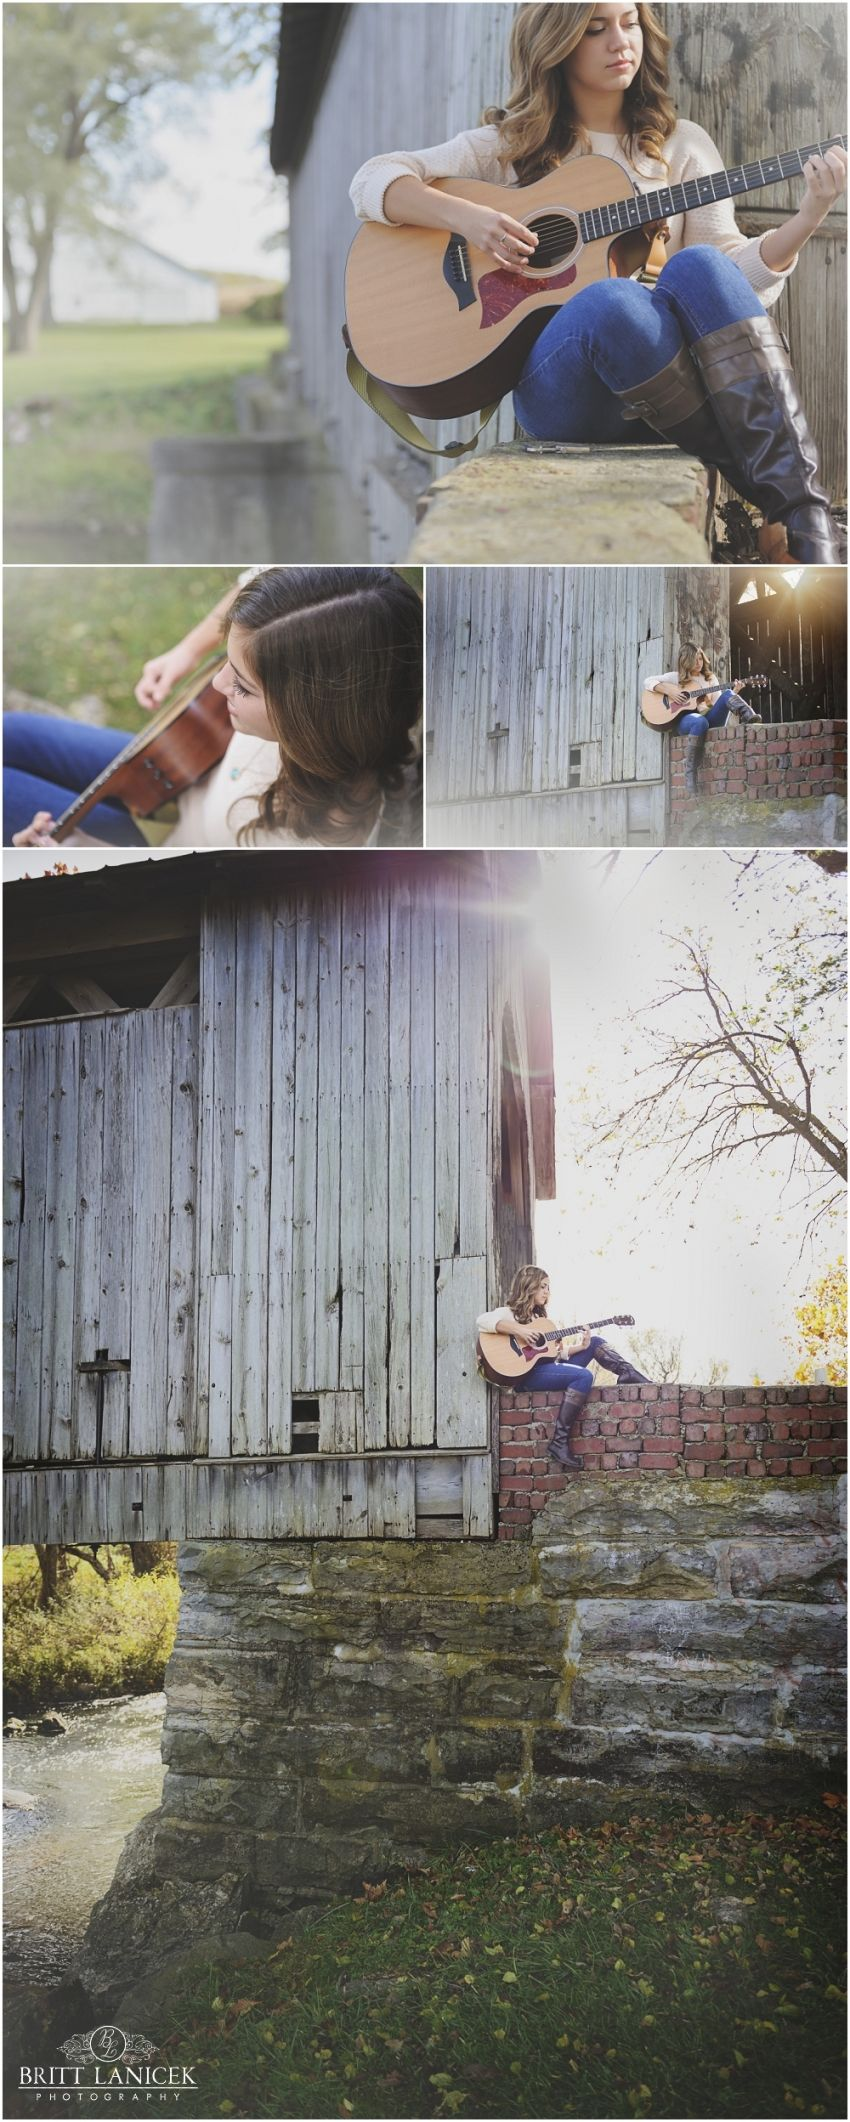 Natural Light Senior Portraits | Custom Senior Portraits | Senior Pictures with Guitar | by Britt Lanicek Photography in NW Ohio. http://www.brittlanicekphotography.com